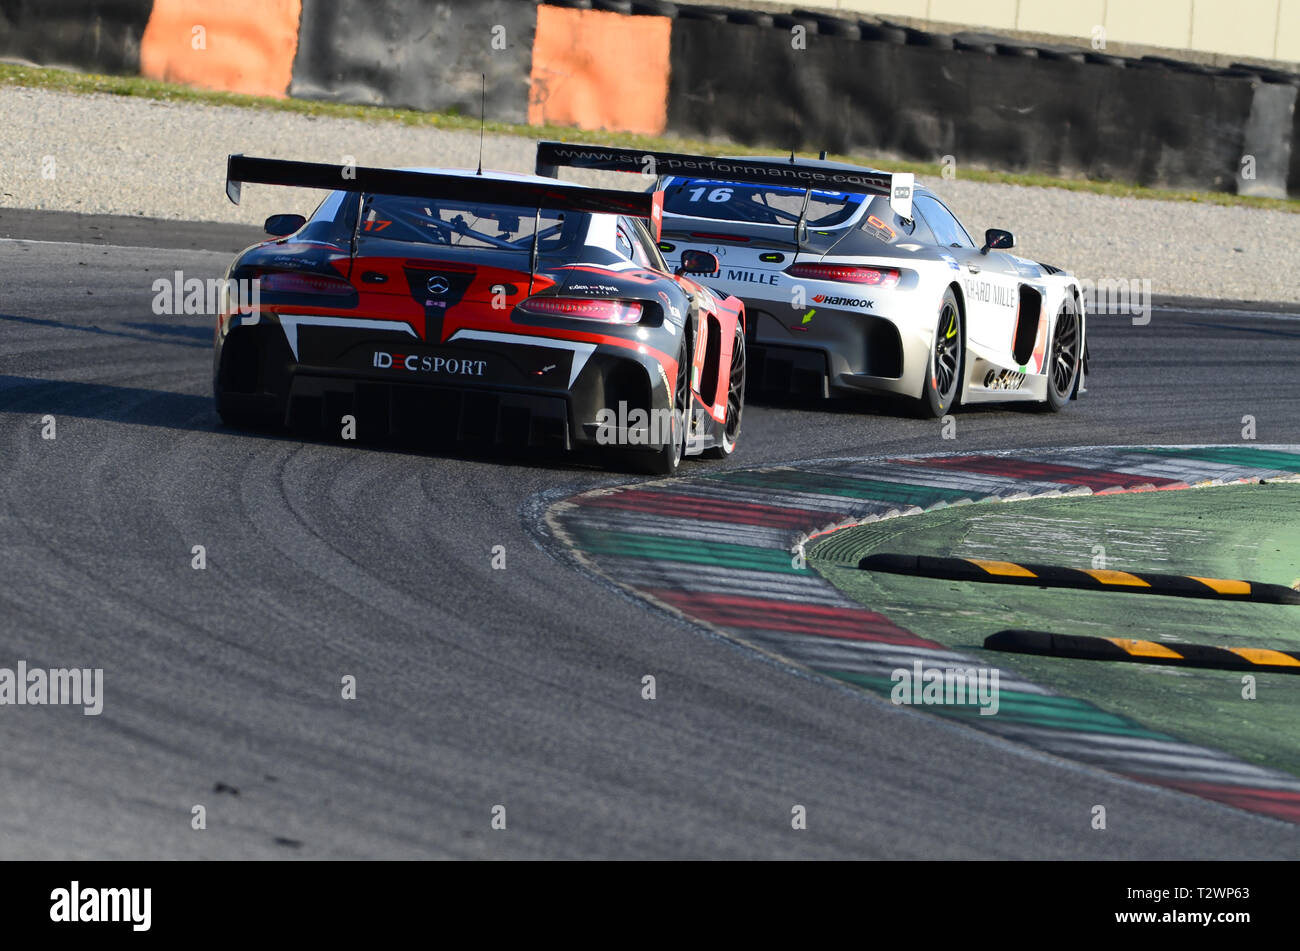 Italy - 29 March, 2019: Mercedes-AMG GT3 of IDEC SPORT RACING France Team driven by Patrice Lafargue/Paul Lafargue/Dimitri Enjalbert in action during  Stock Photo